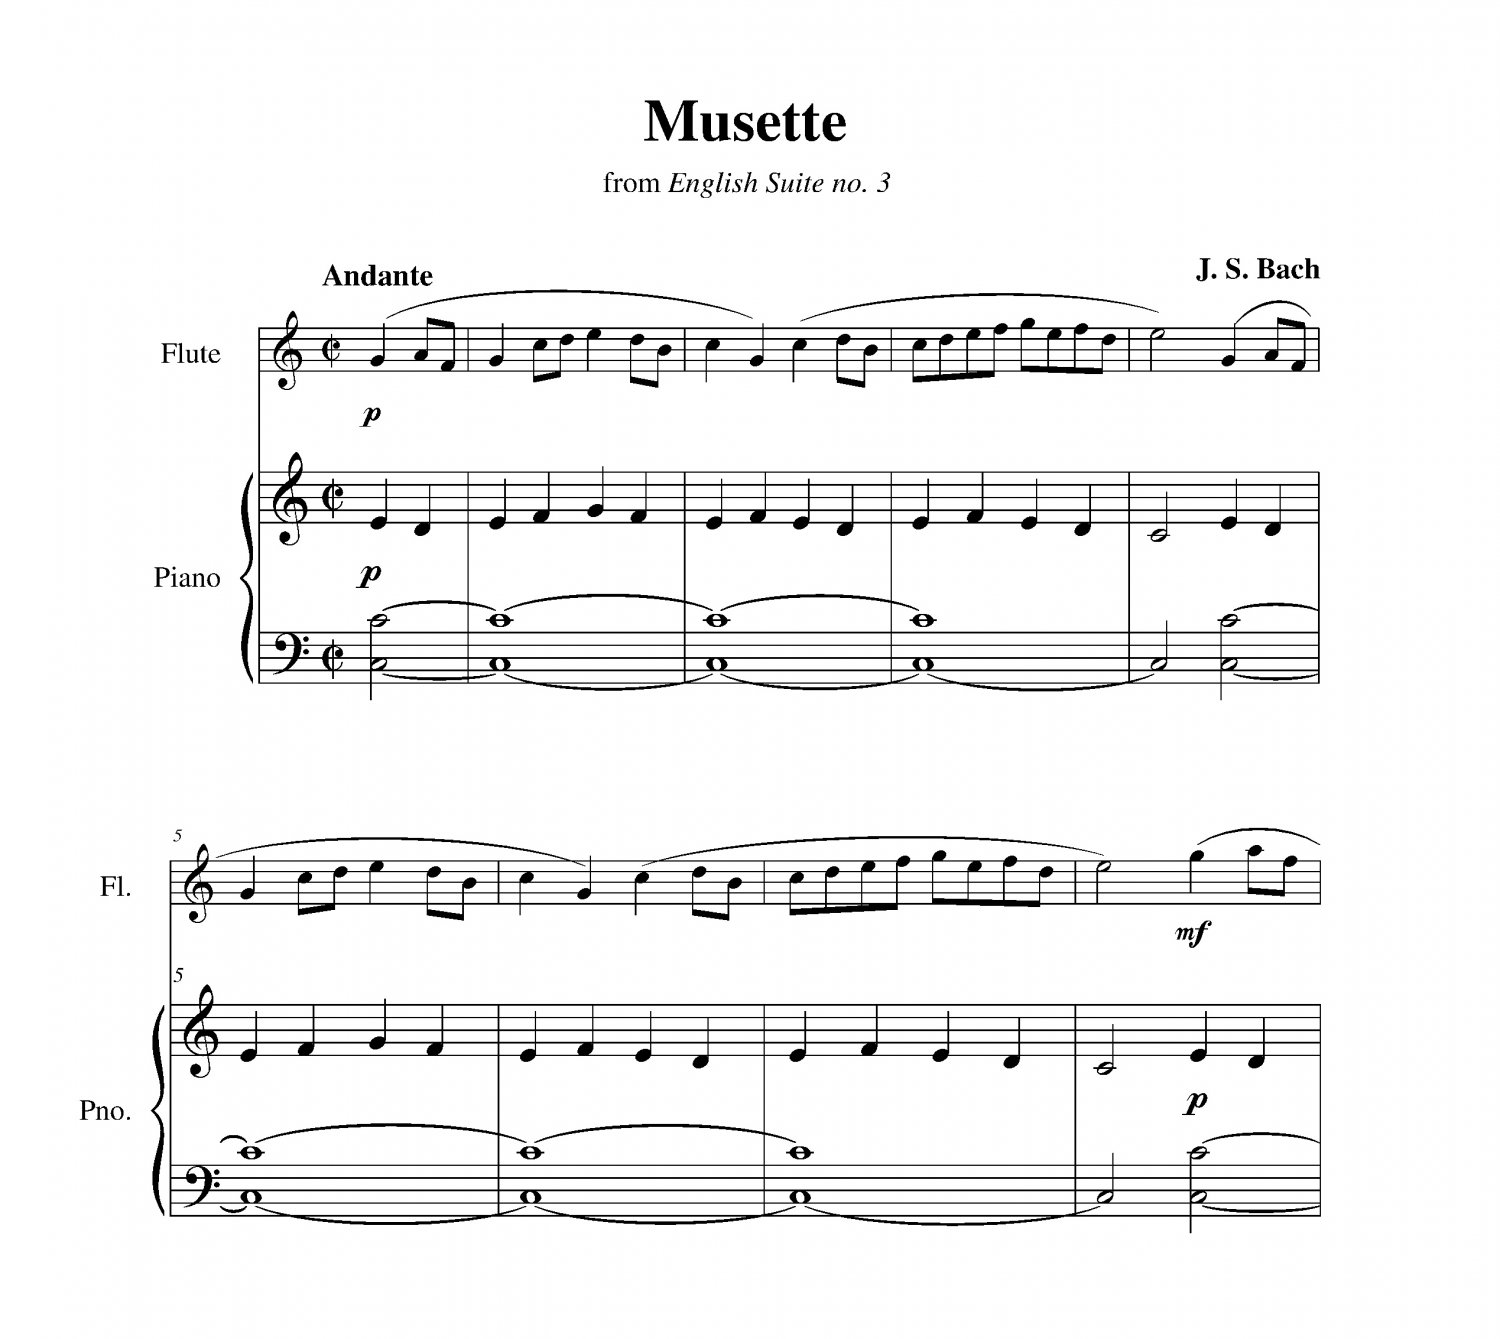 Bach - Musette from English Suite no. 3